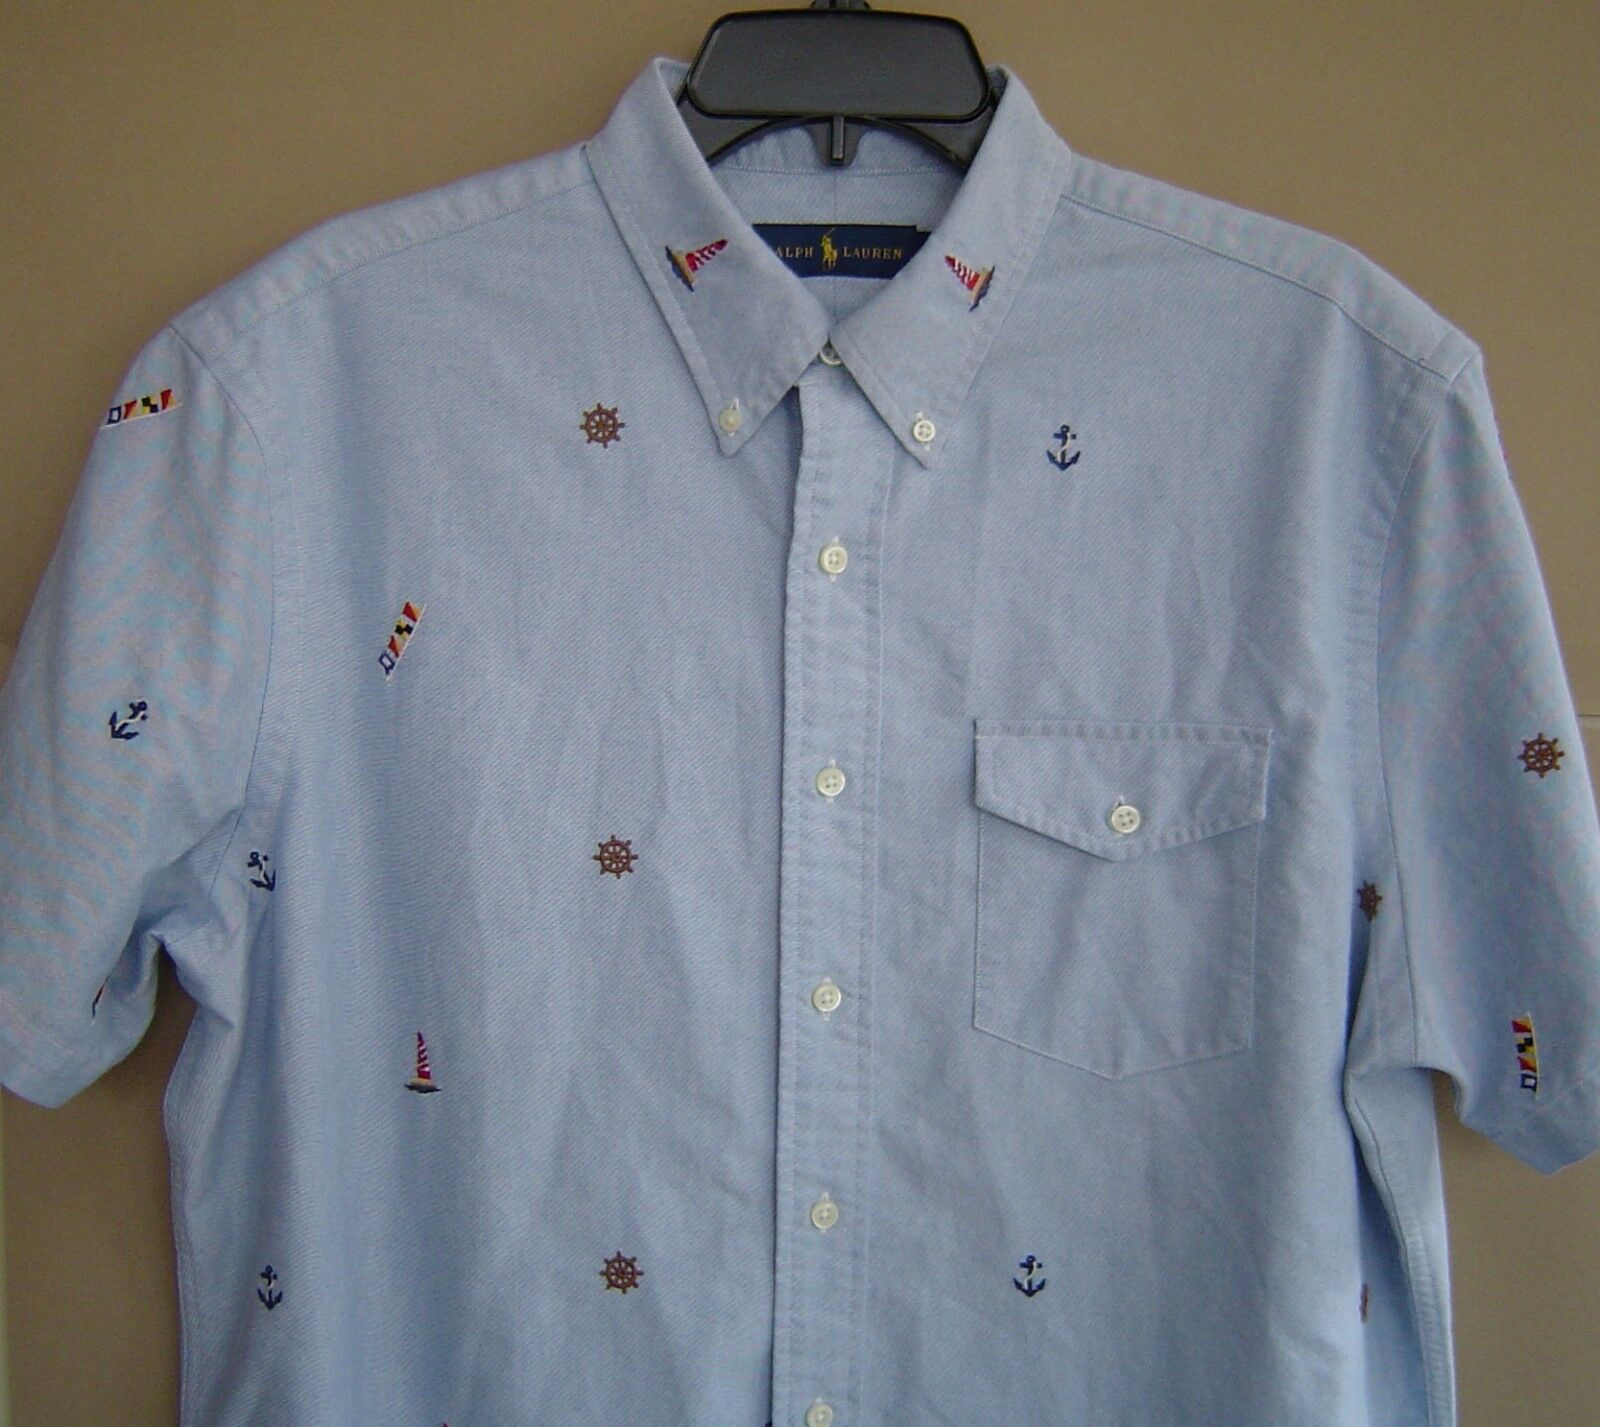 NWT  POLO RALPH LAUREN L EMBROIDERED COTTON OXFORD SHIRT Short Sleeve blueE